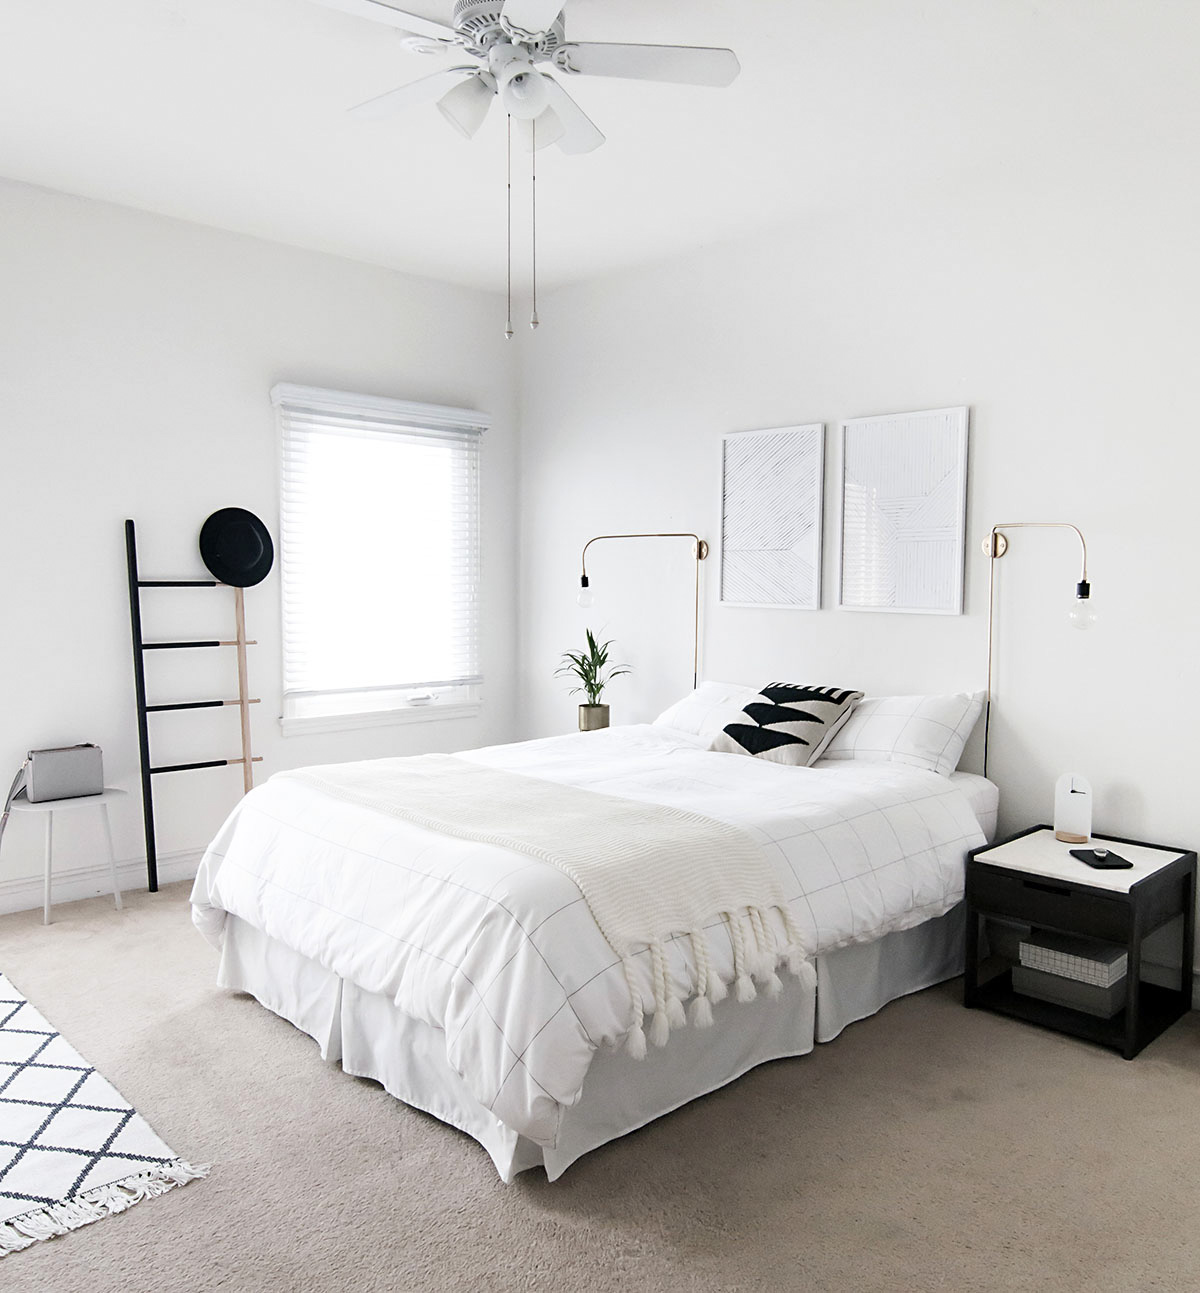 Minimal Bedroom Aesthetic with Zen Vibe